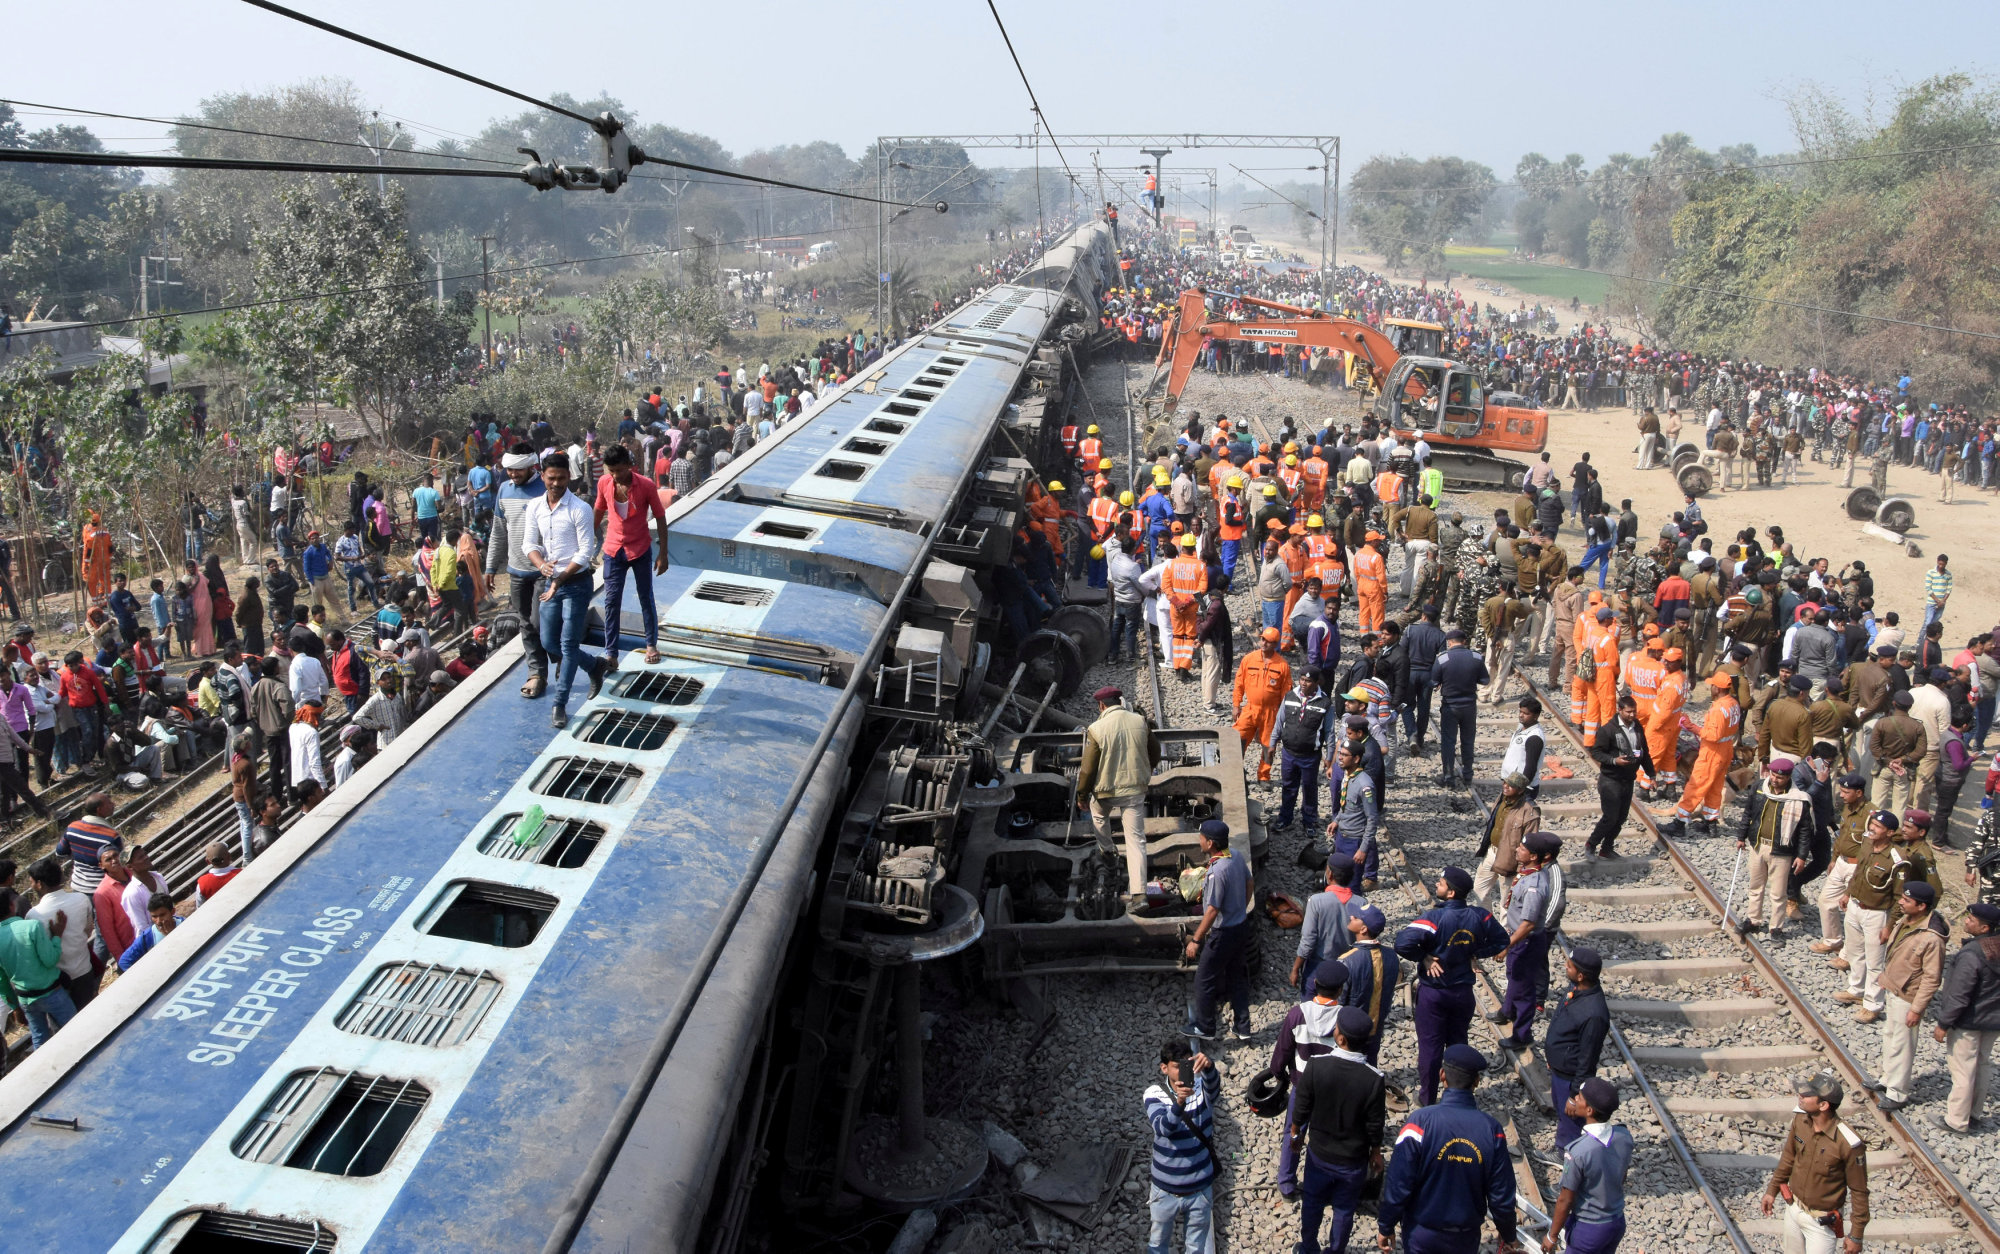 Rescue workers look for survivors after a passenger train derailed near Sahadai Buzurg railway station in the eastern state of Bihar, India, Sunday. | REUTERS